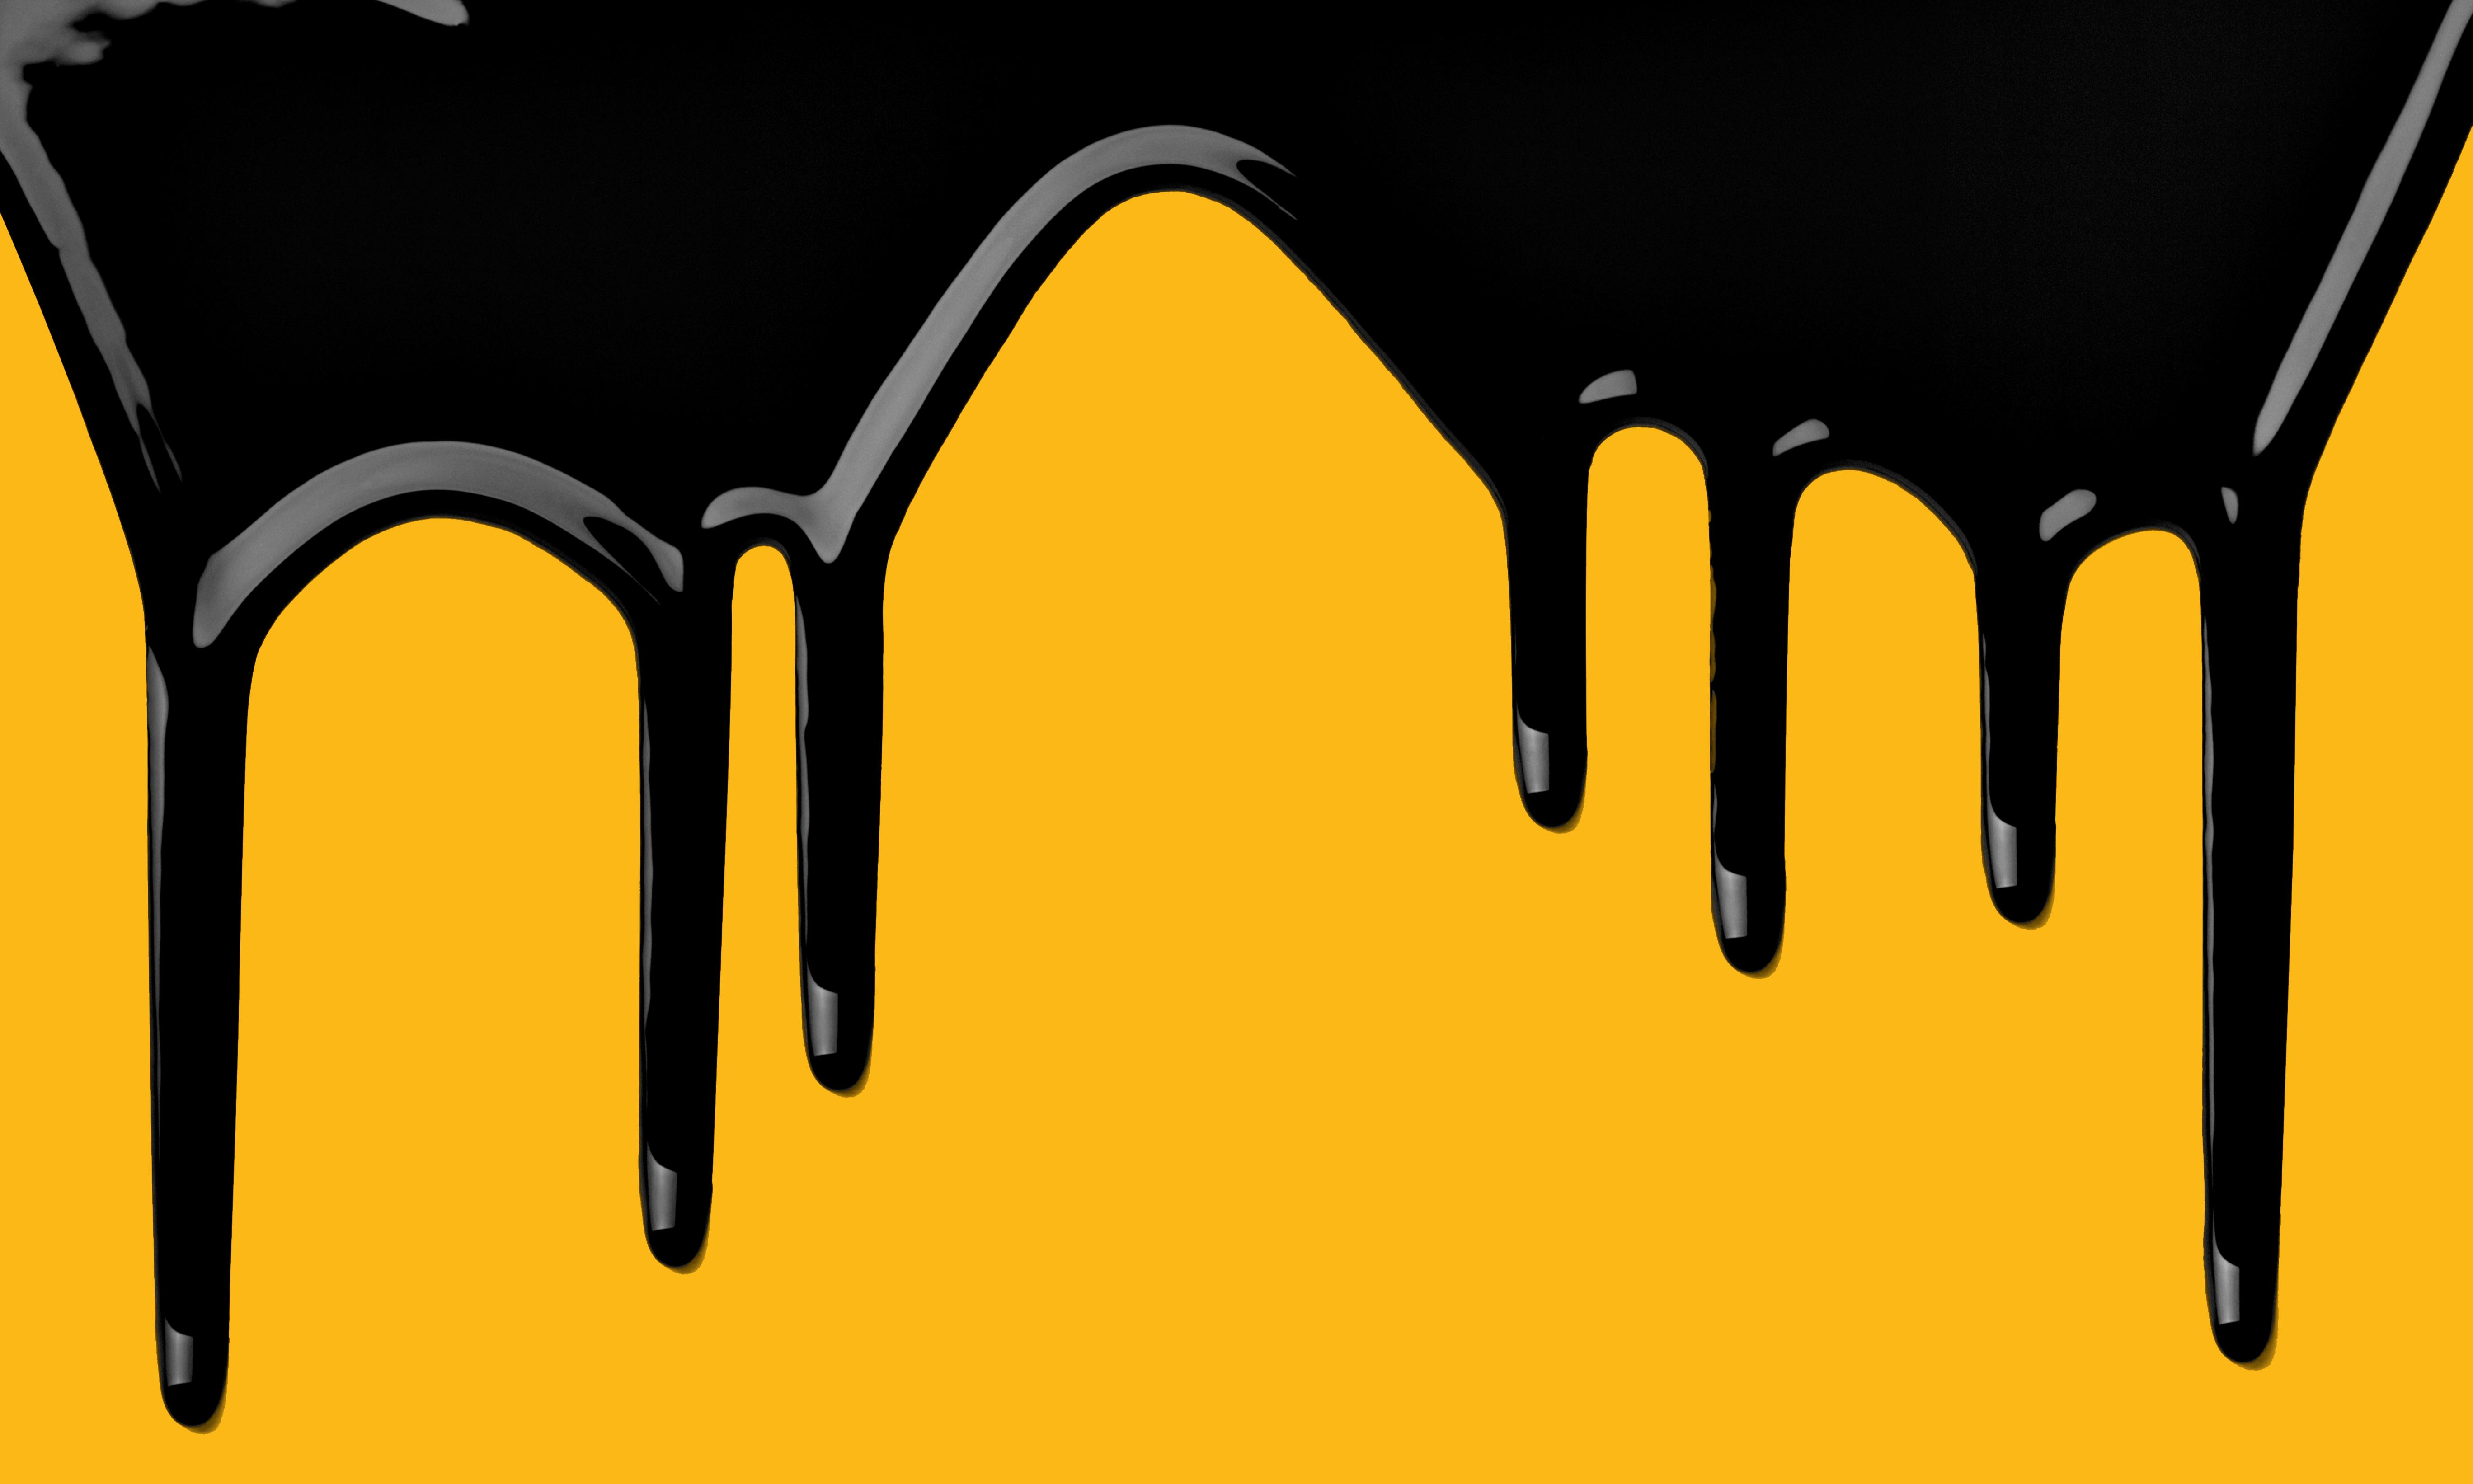 Oil firms to pour extra 7m barrels per day into markets, data shows